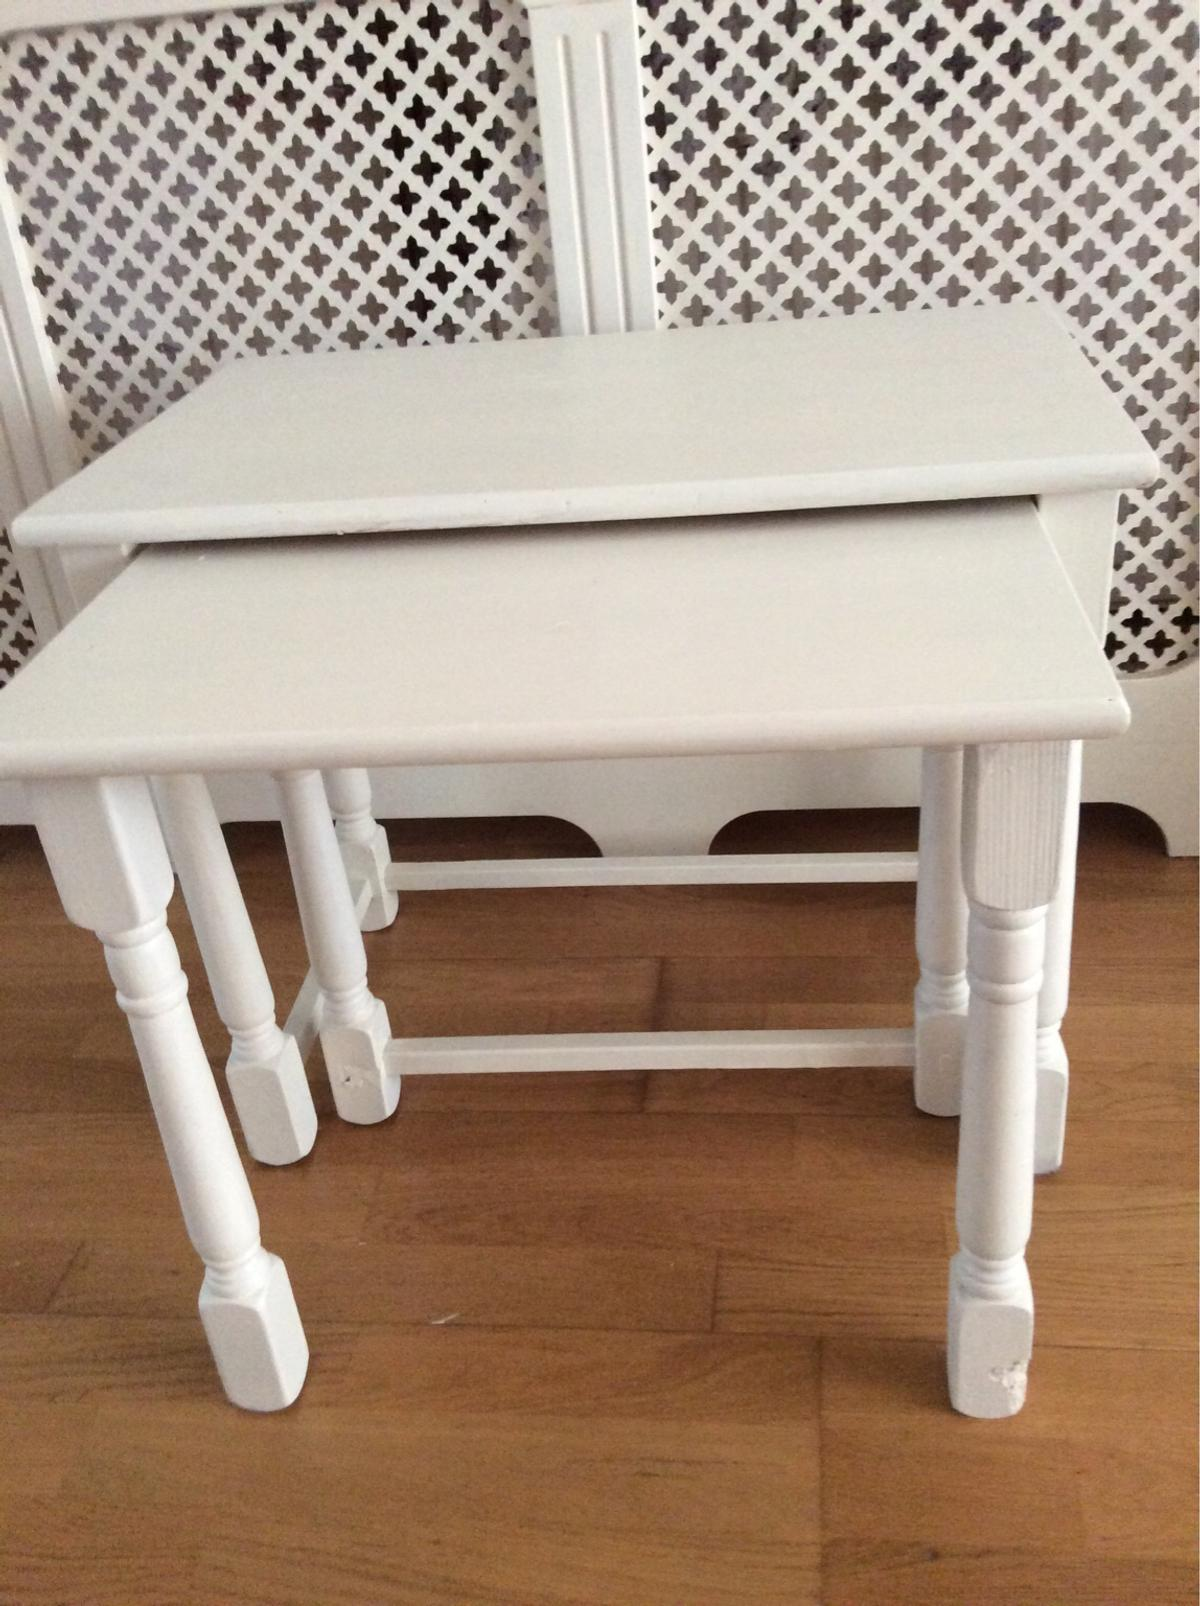 Cream Nest Of Coffee Tables In Rh10 Crawley For 30 00 For Sale Shpock